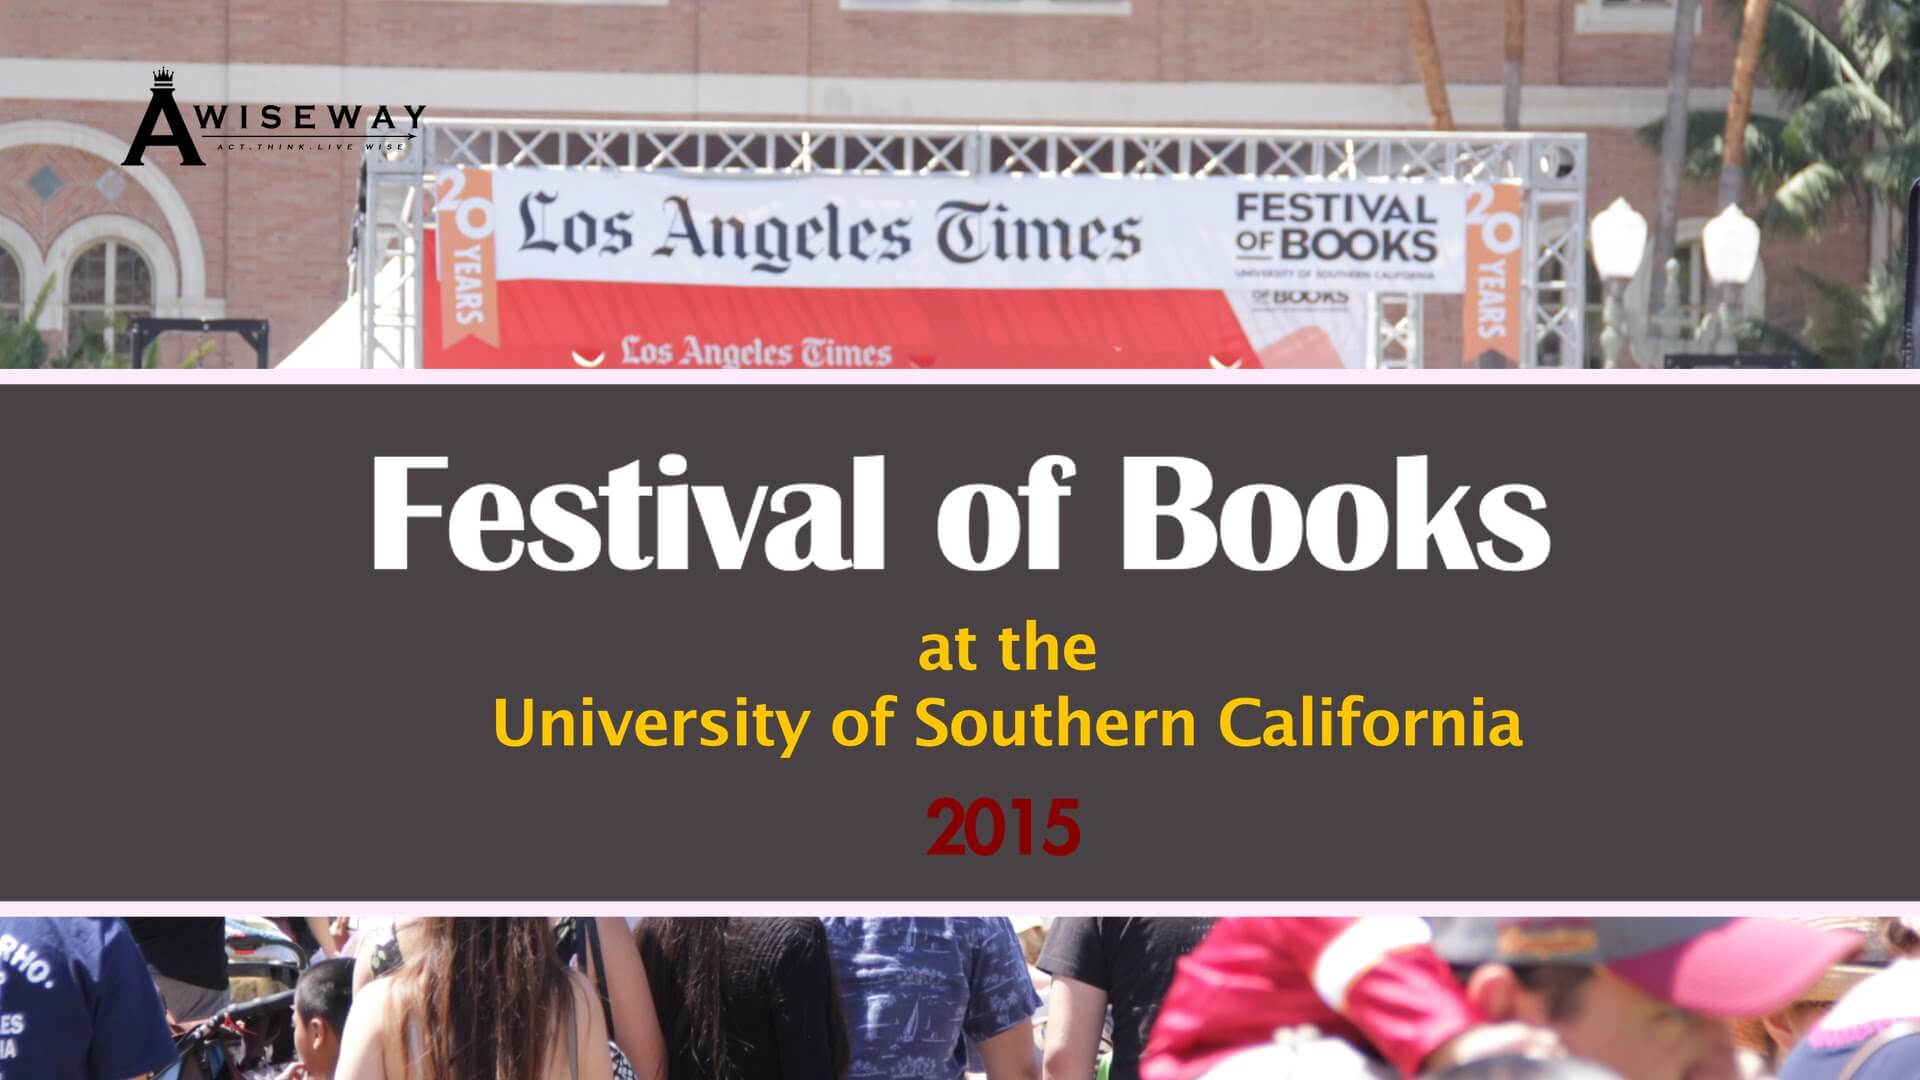 Festival of Books 2015 | A Wise Way (Part 3)